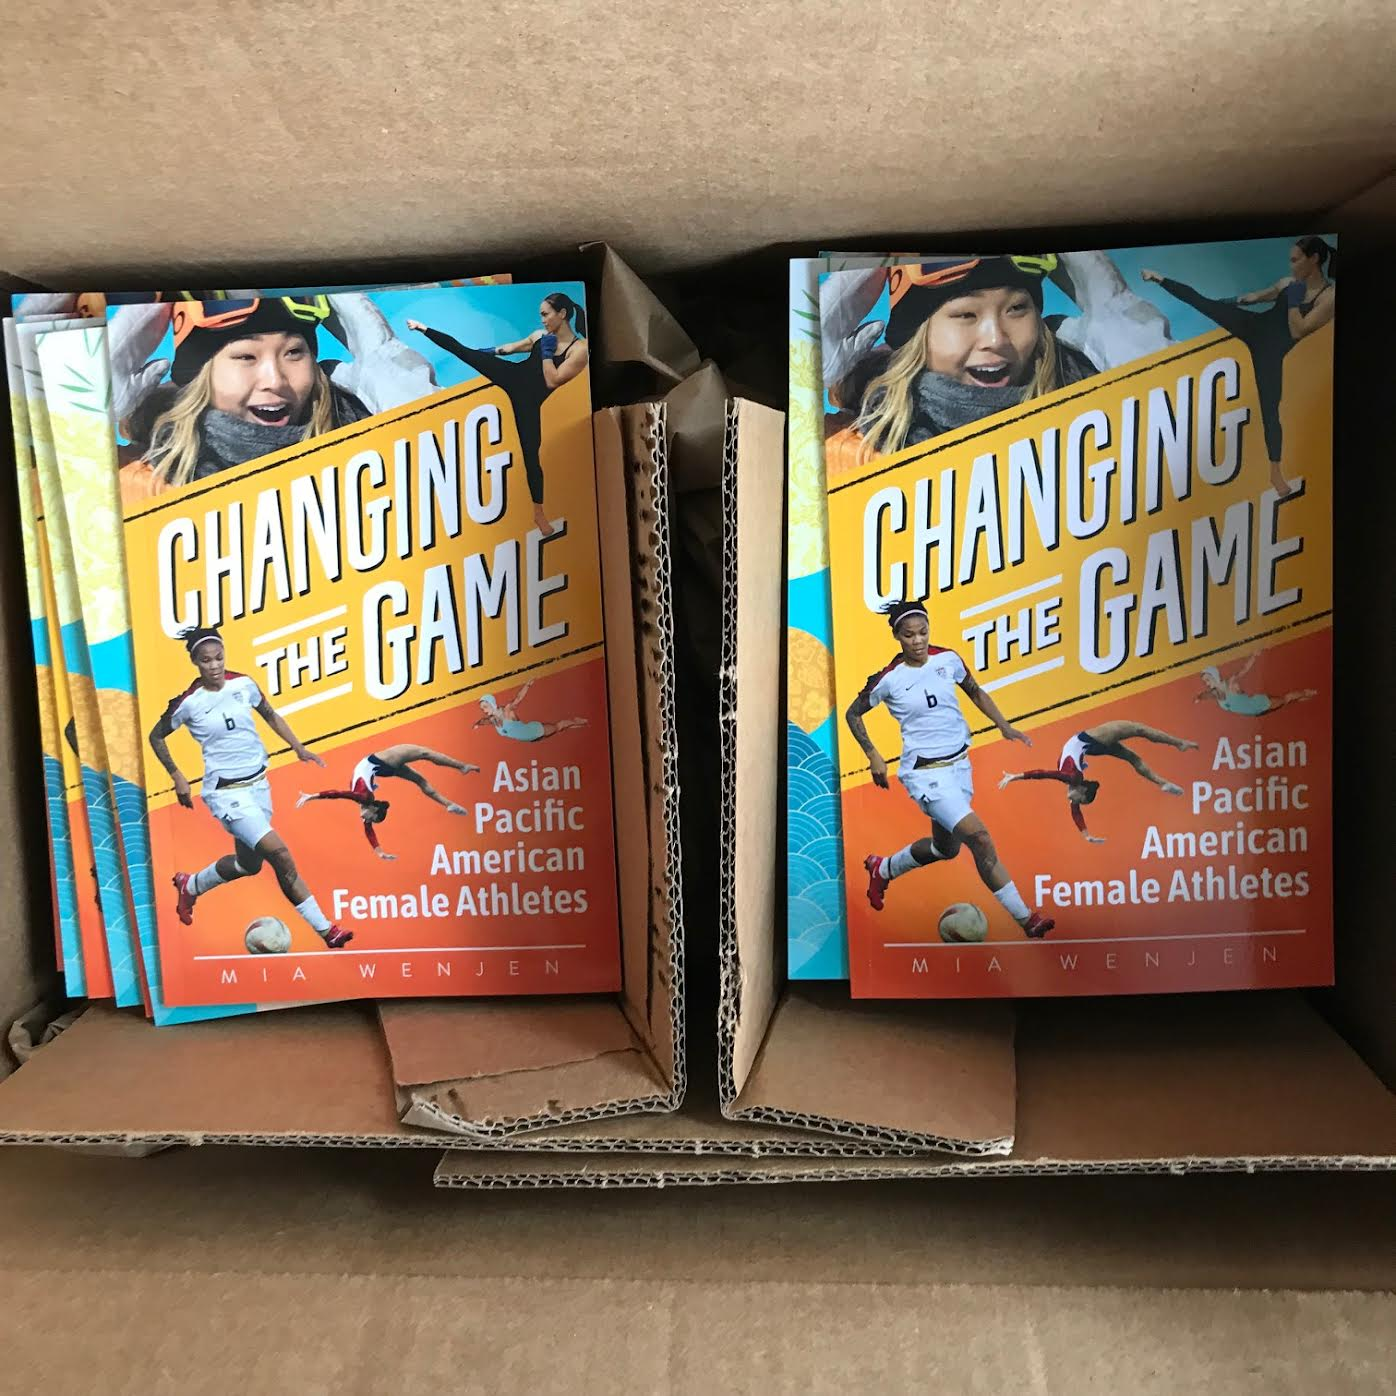 Changing the Game Mia Wenjen books have arrived